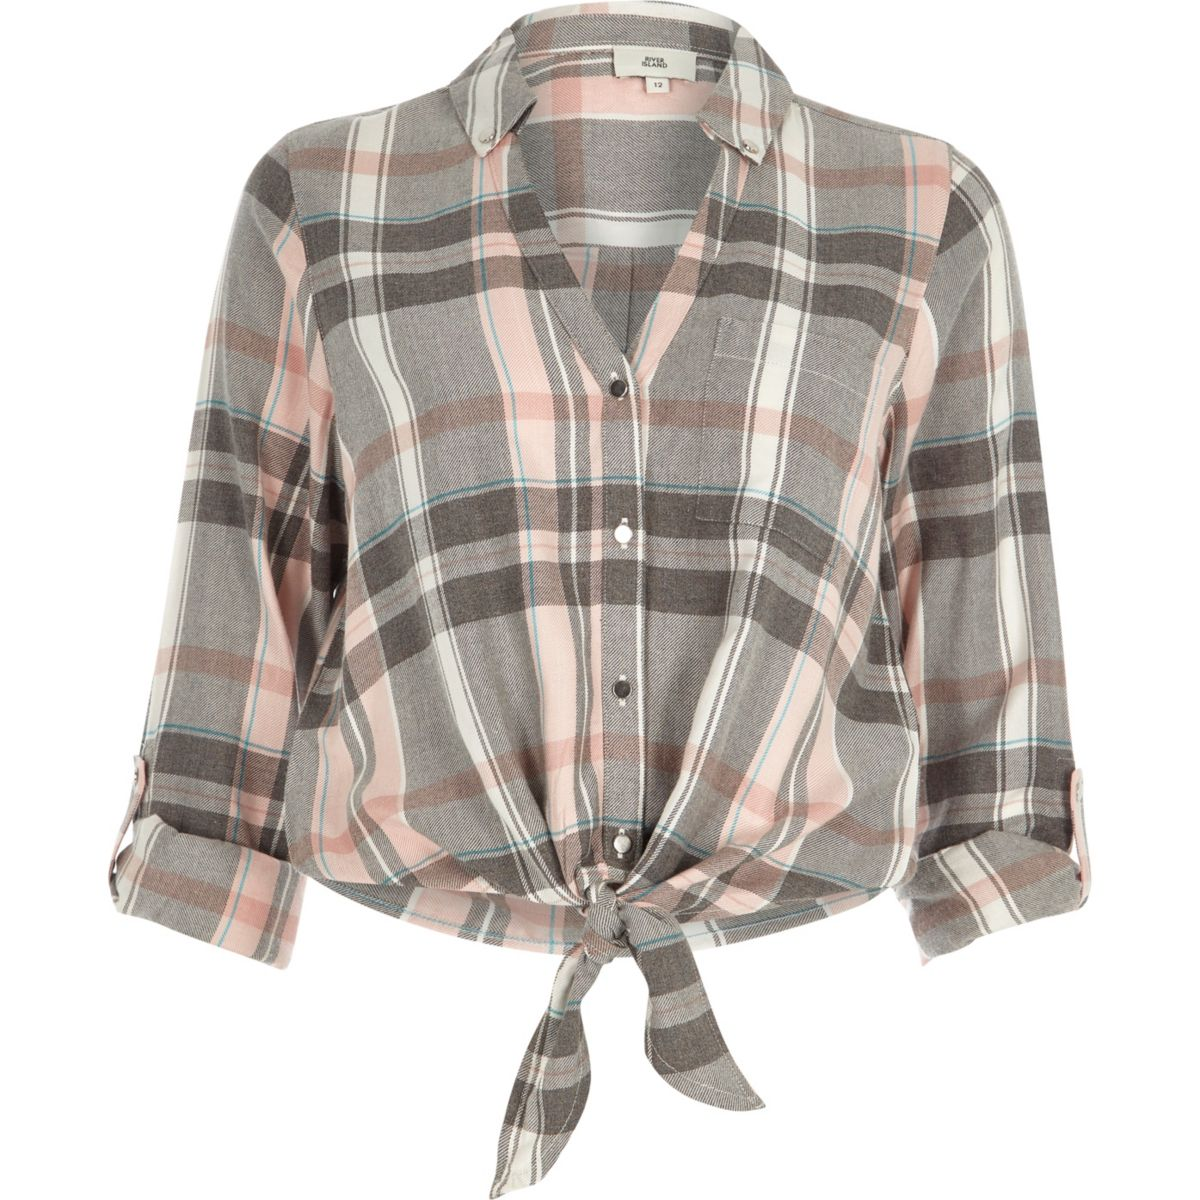 Pink check tie knot front shirt